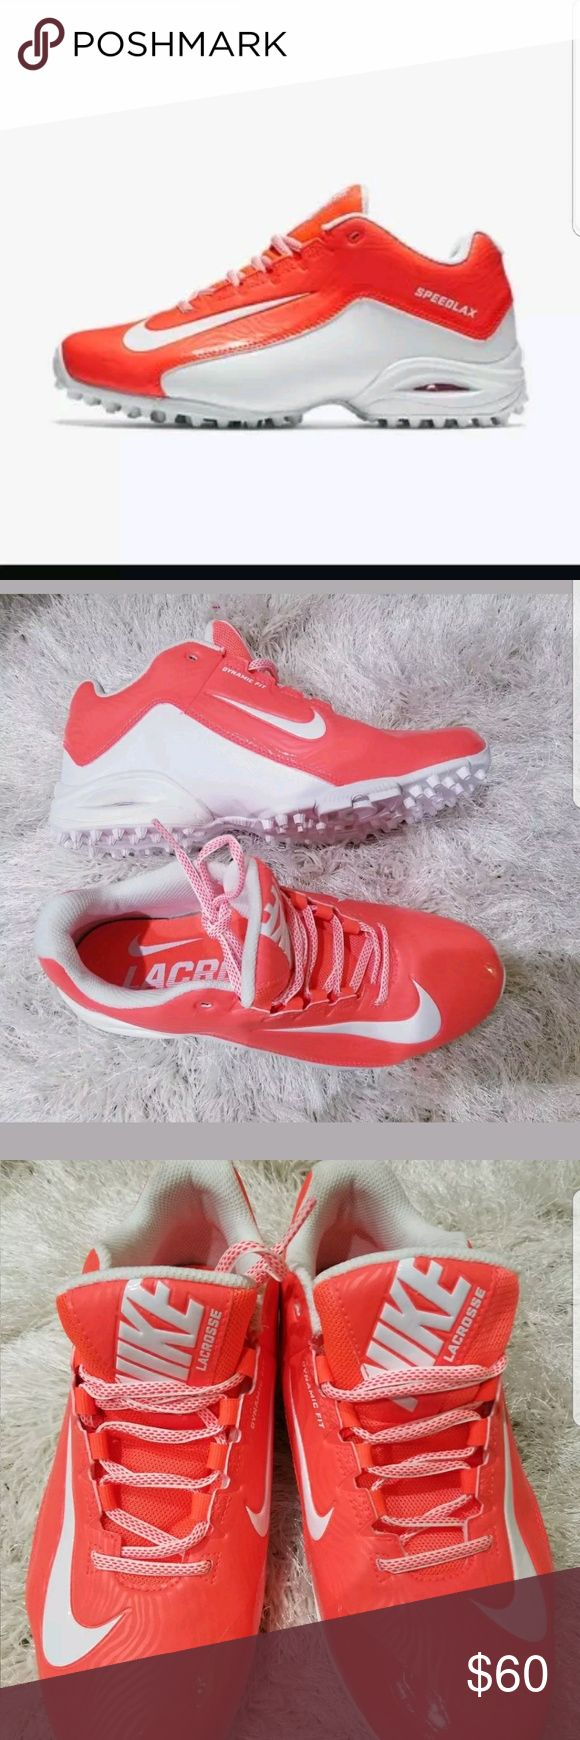 Nike Lacrosse Cleat SpeedLax 5 Turf shoes Orange New Women's Lacrosse Cleat Nike SpeedLax 5 Turf shoe in Orange 807157-811   Size 9.5  Condition - Brand new without box   Benefits   Synthetic upper for comfort and durability  Dual-pull fit system for dynamic lockdown  Phylon midsole for cushioning and support  Low-profile forefoot for optimal feel and responsiveness  Rubber turf bottom for traction   Thanks for looking! Nike Shoes